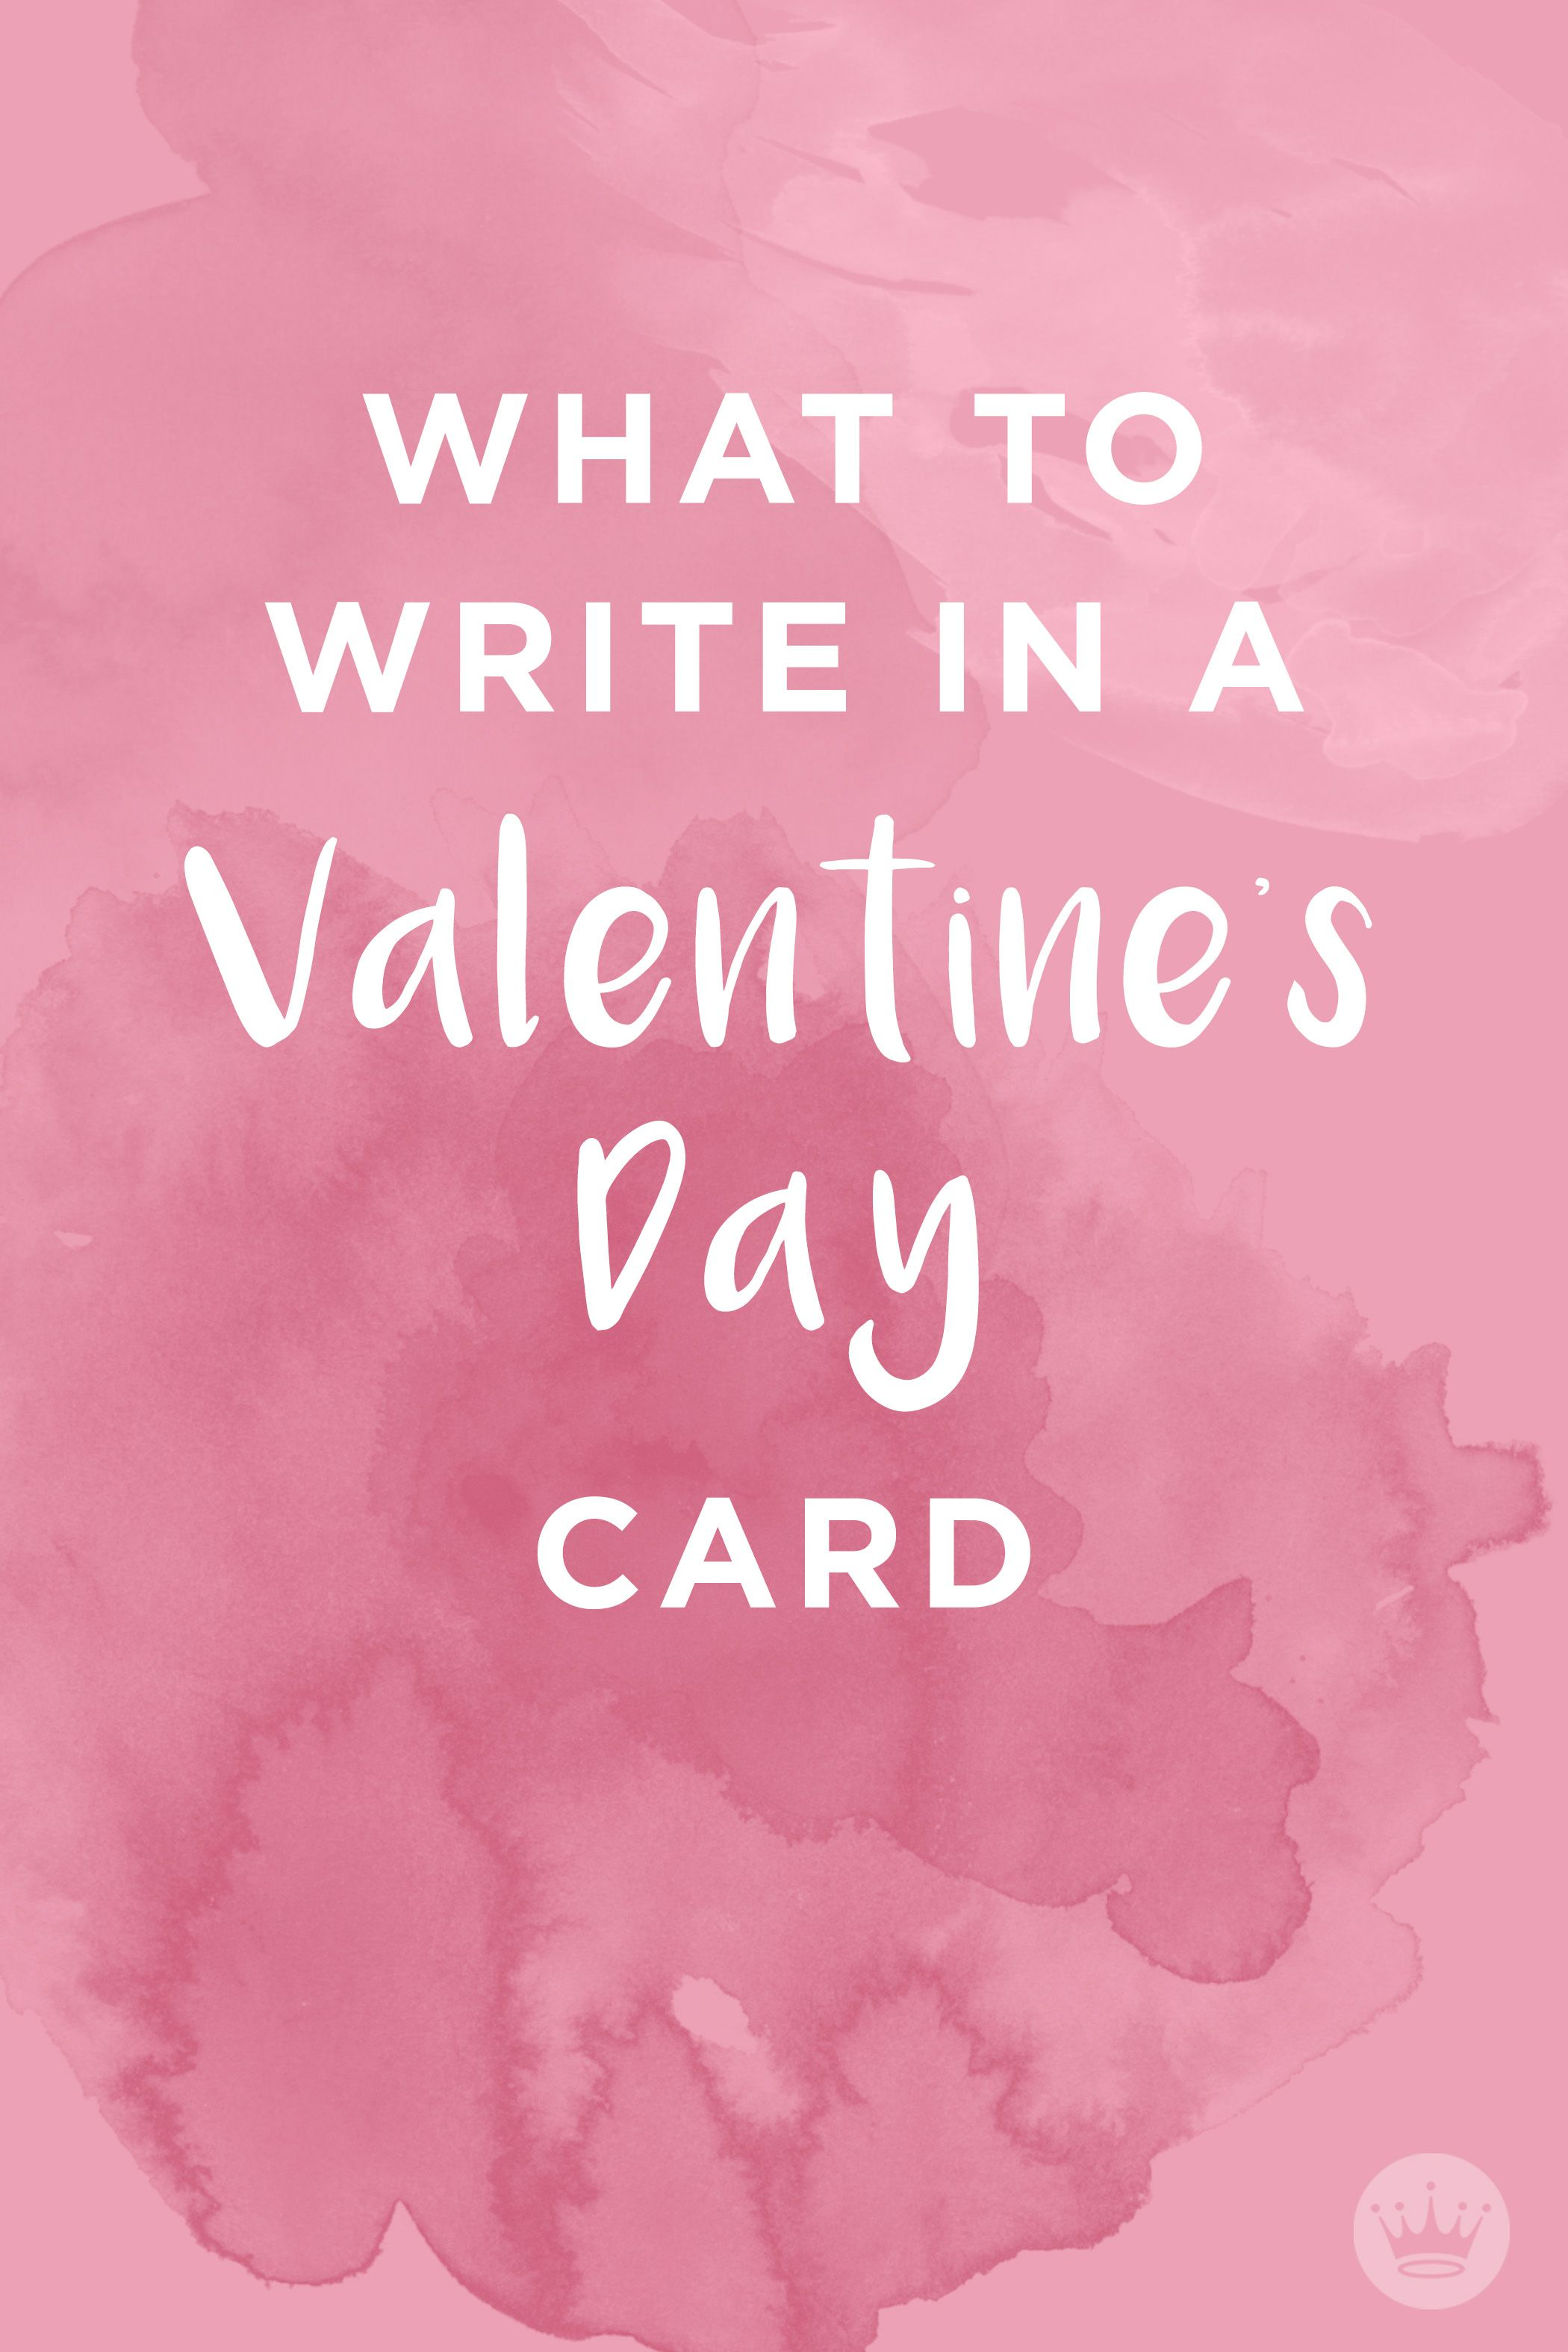 Valentine Messages What To Write In A Valentine S Day Card